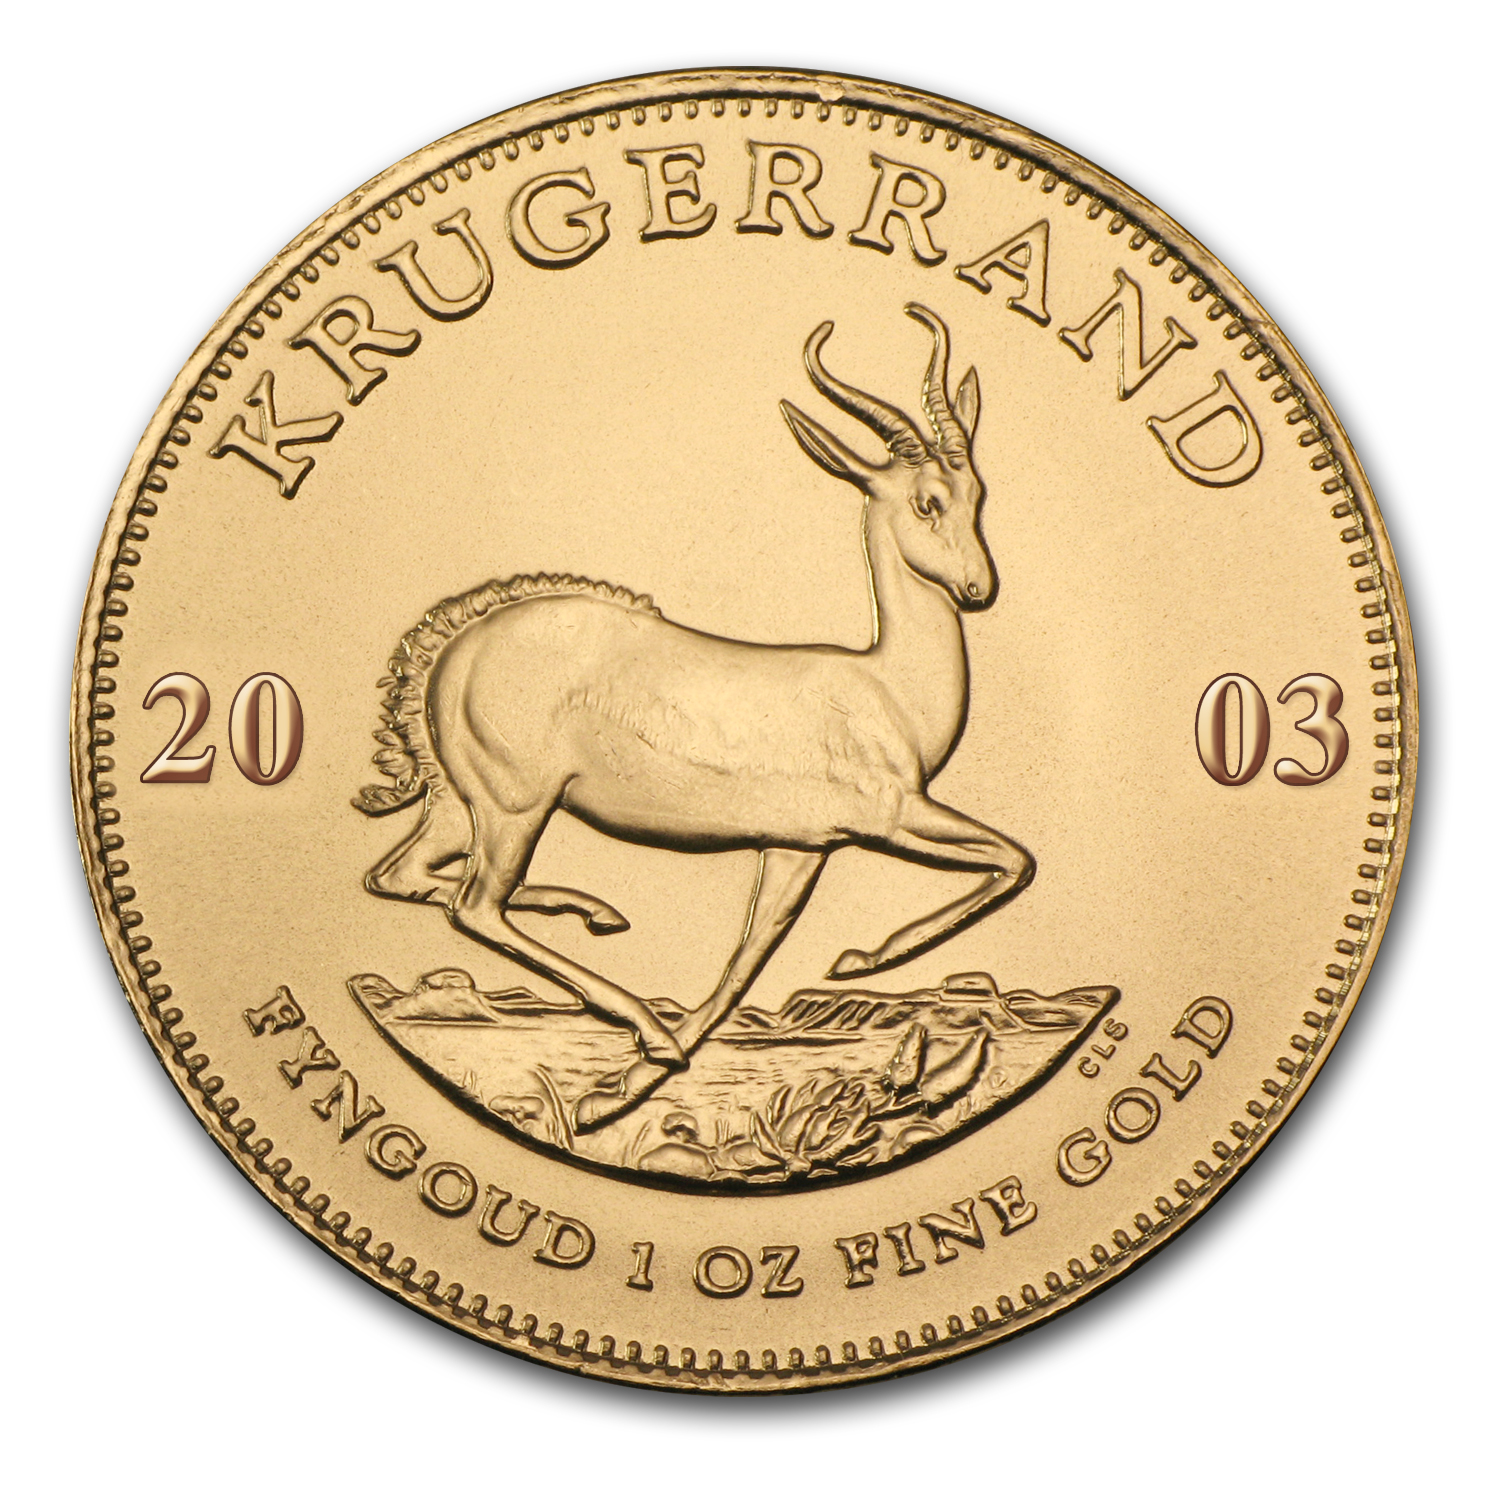 2003 South Africa 1 oz Gold Krugerrand